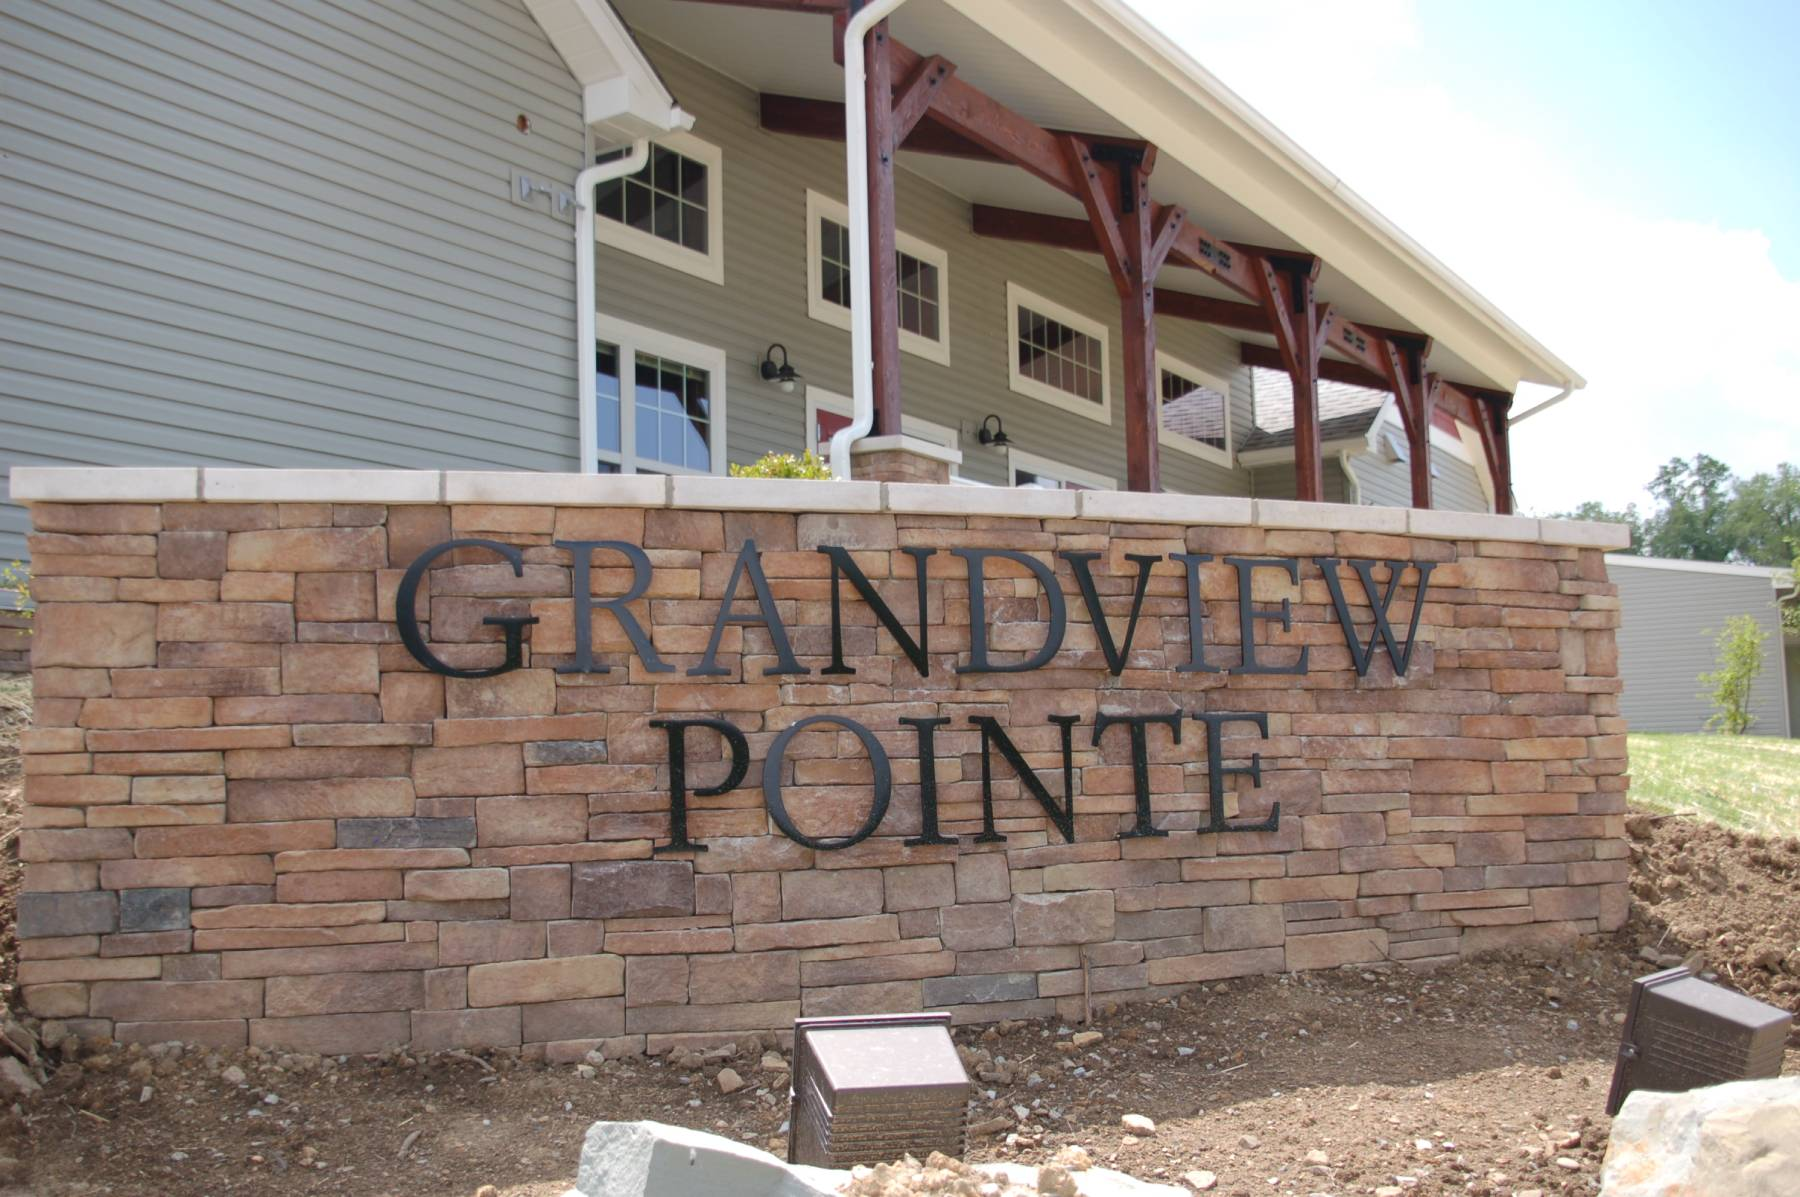 Grandview Pointe Images